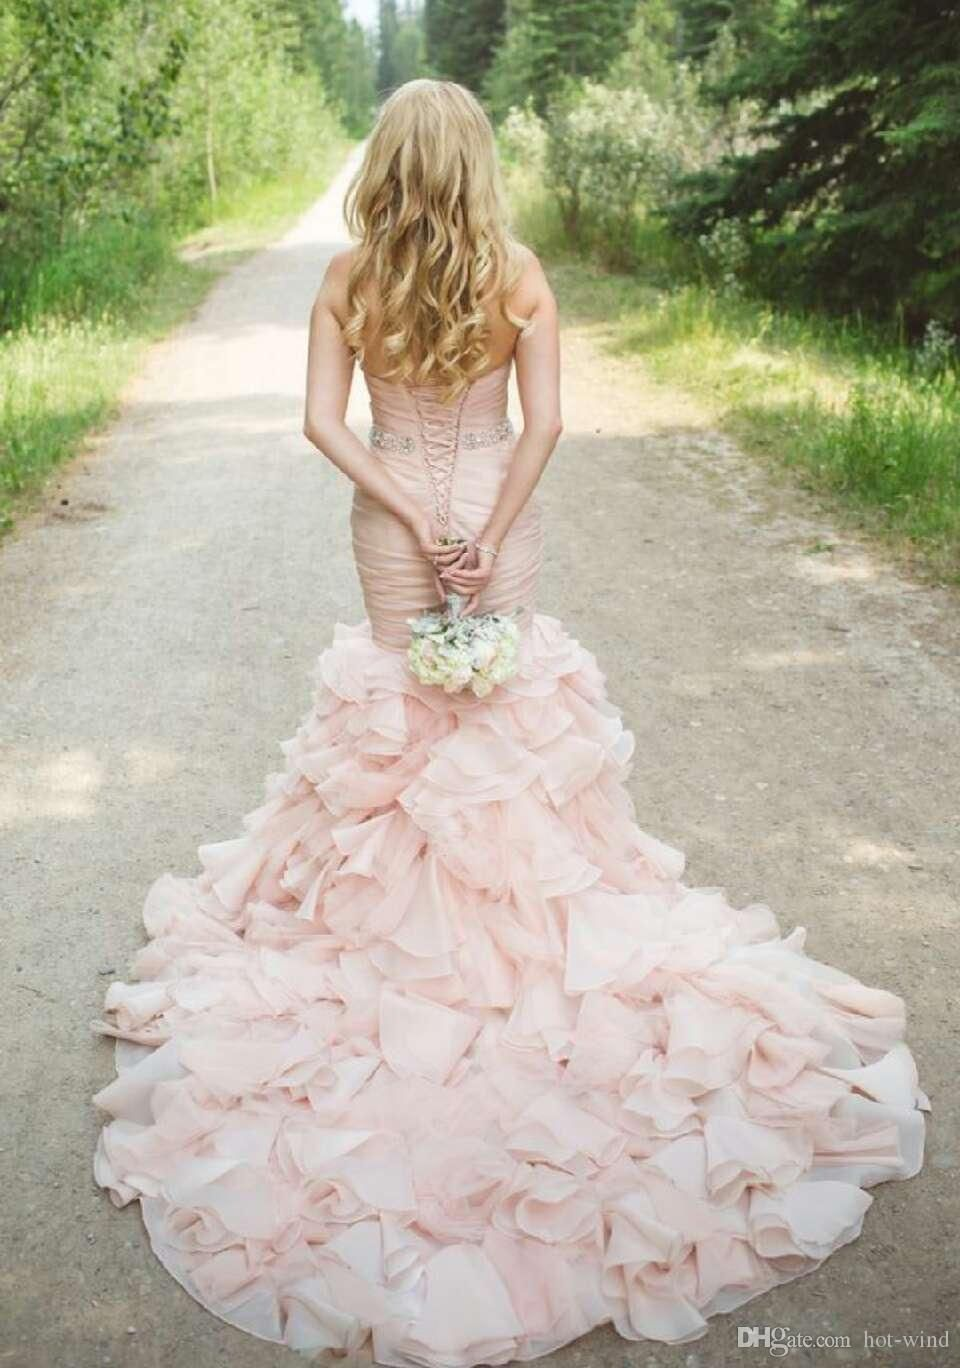 Buy wholesale real image blush pink sweetheart tiered layered organza mermaid wedding dresses 2016 with bling crystal belt lace up back bridal gowns which is at a discount now. hot-wind has guaranteed its quality. mermaid dress, pink wedding dress and princess wedding dresses are all in the list of superb dresses.